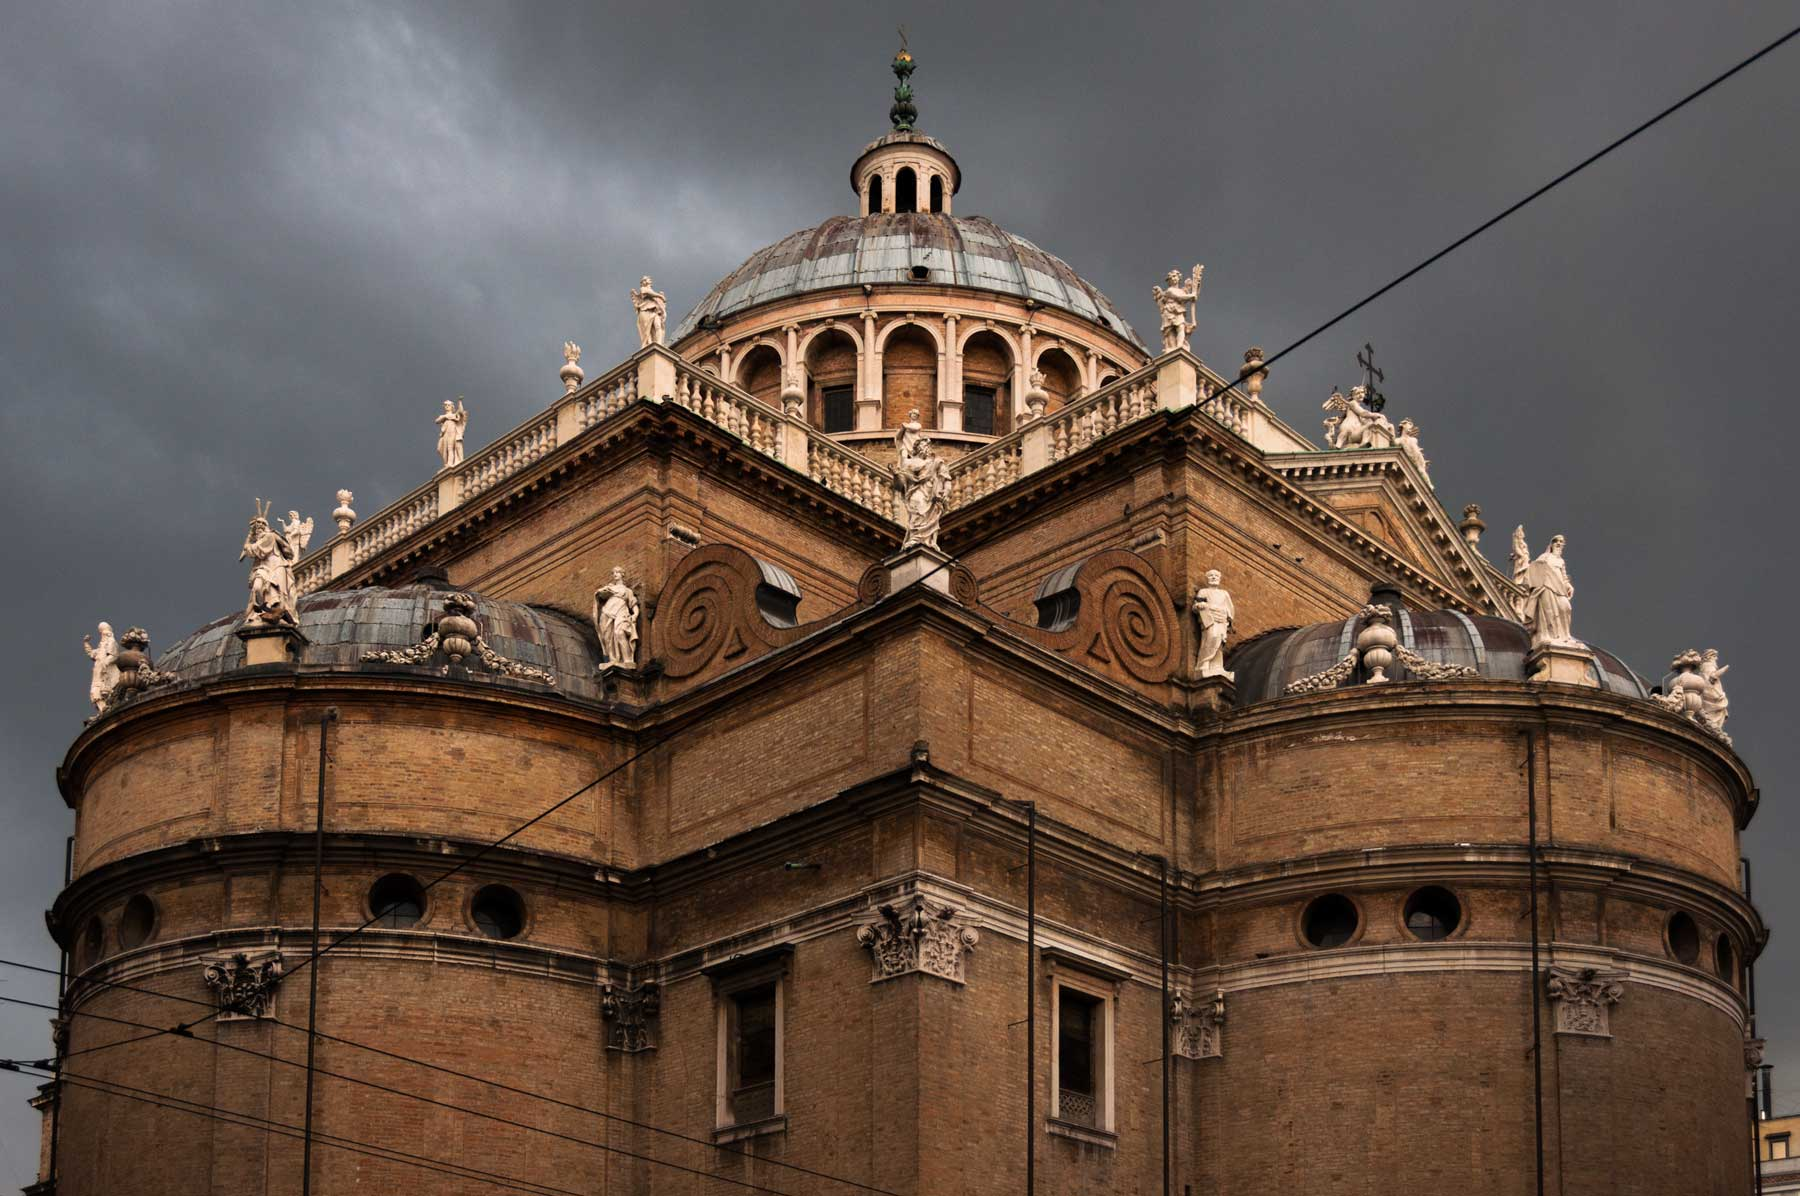 Clouds gather over the Basilica di Santa Maria della Steccata.